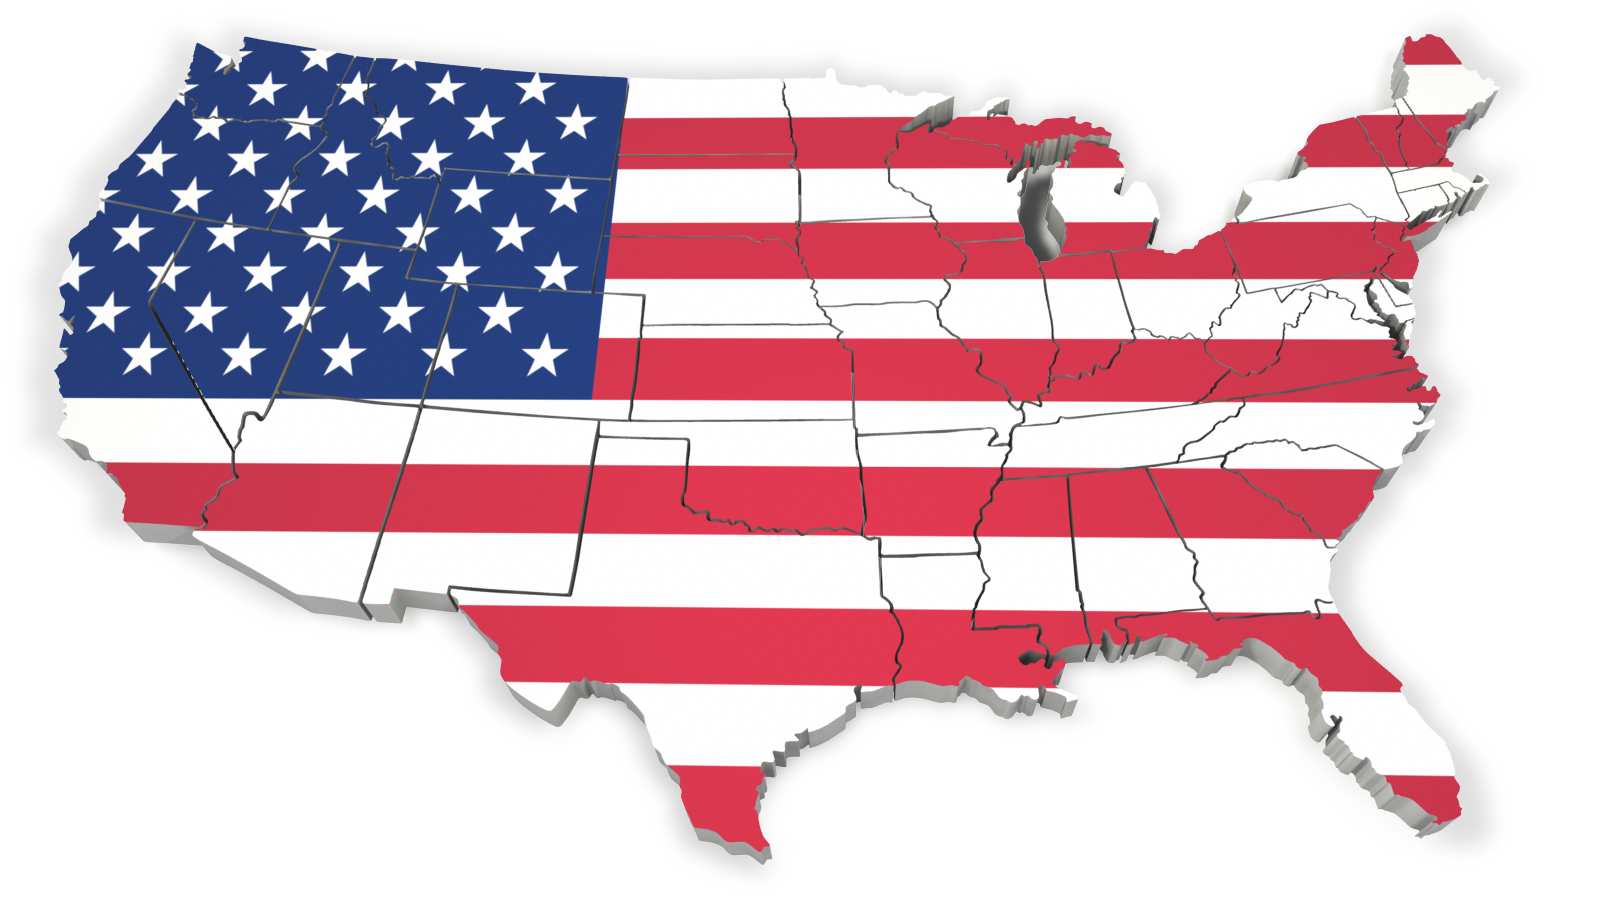 United states flag map outline 1600 clr 3123 Map 3.png - United States PNG HD